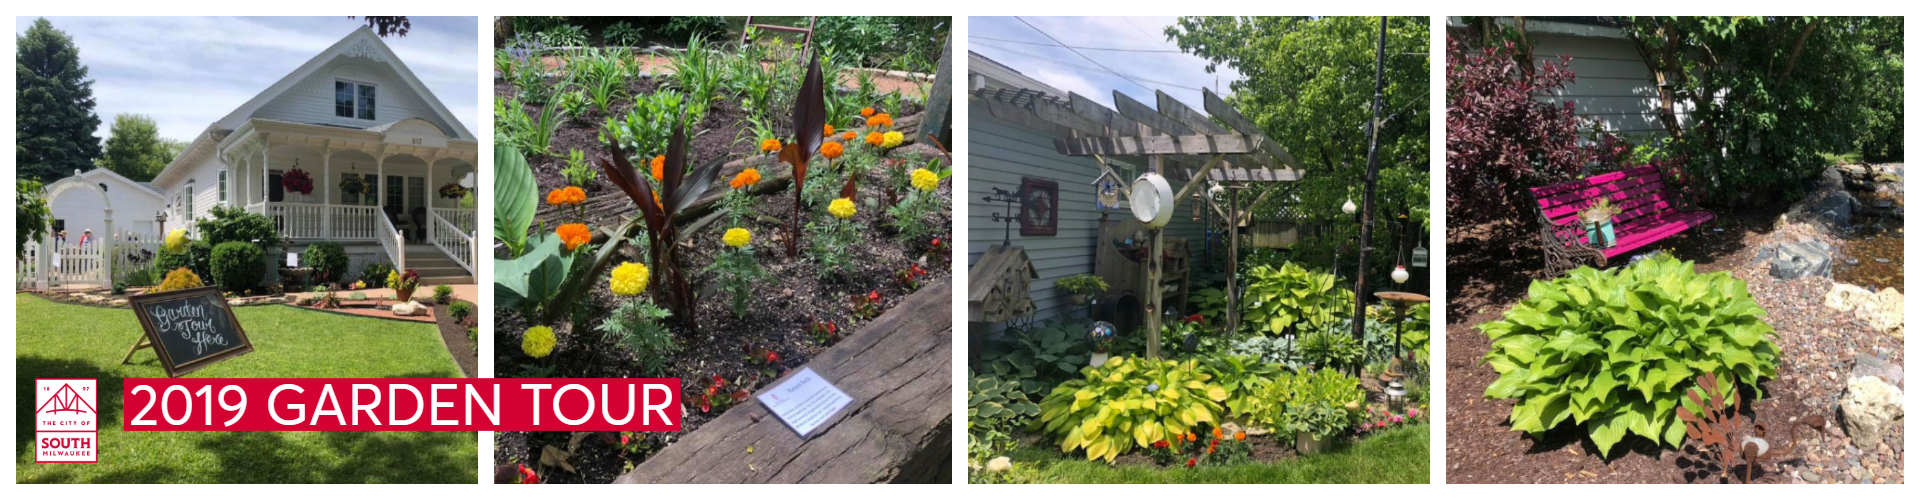 Images of the 2019 Garden Tour